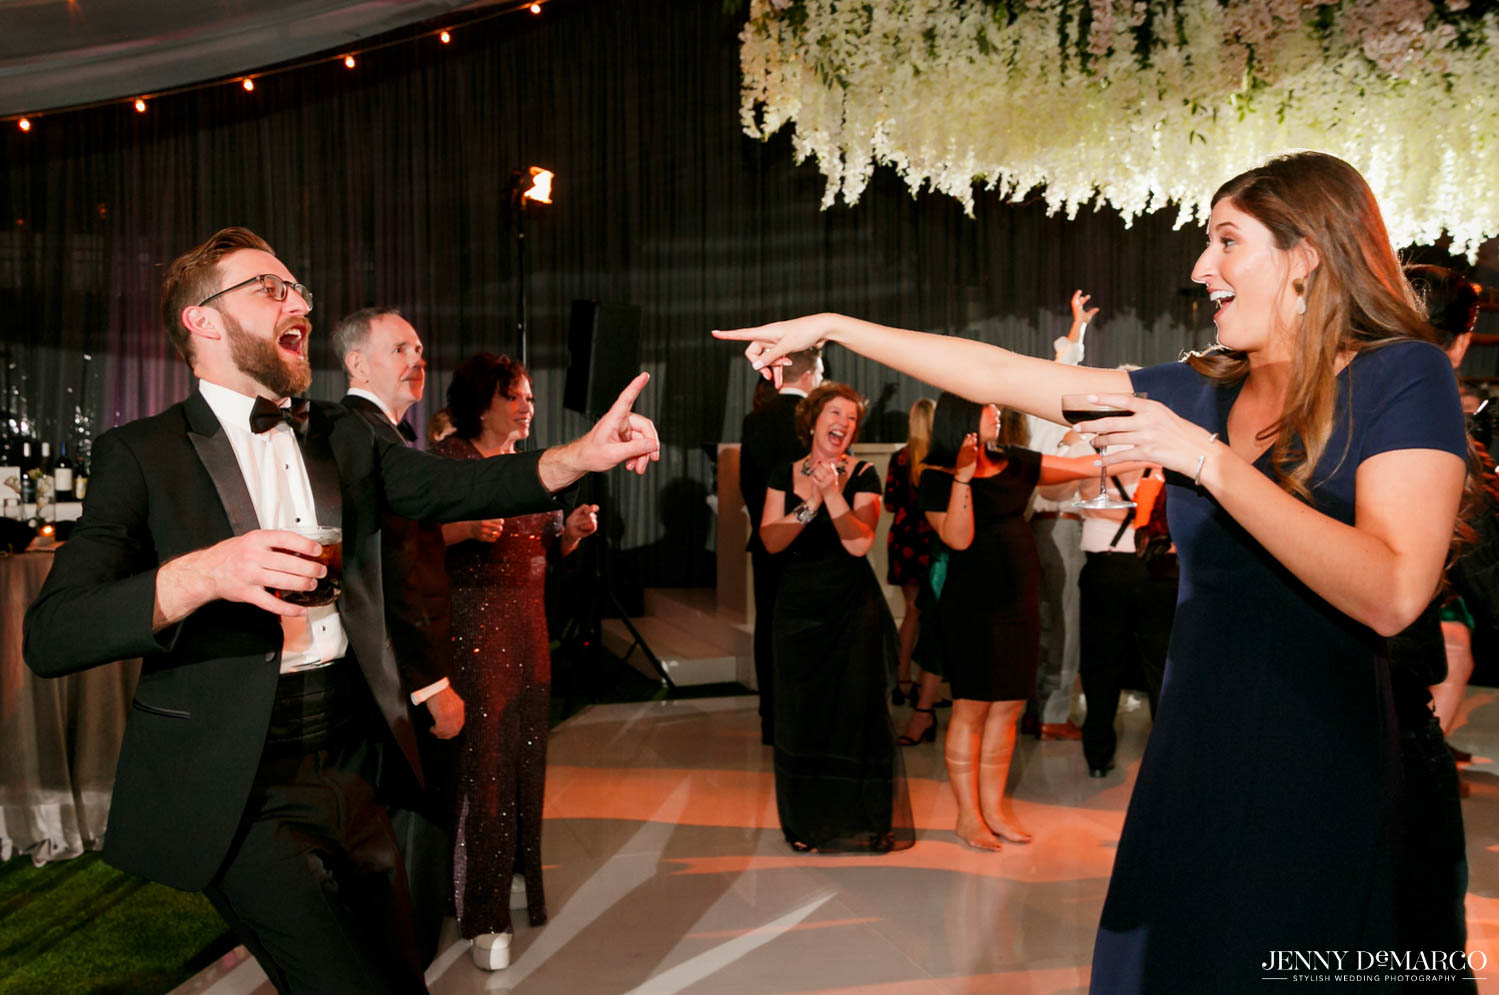 guests dancing and pointing at each other smiling